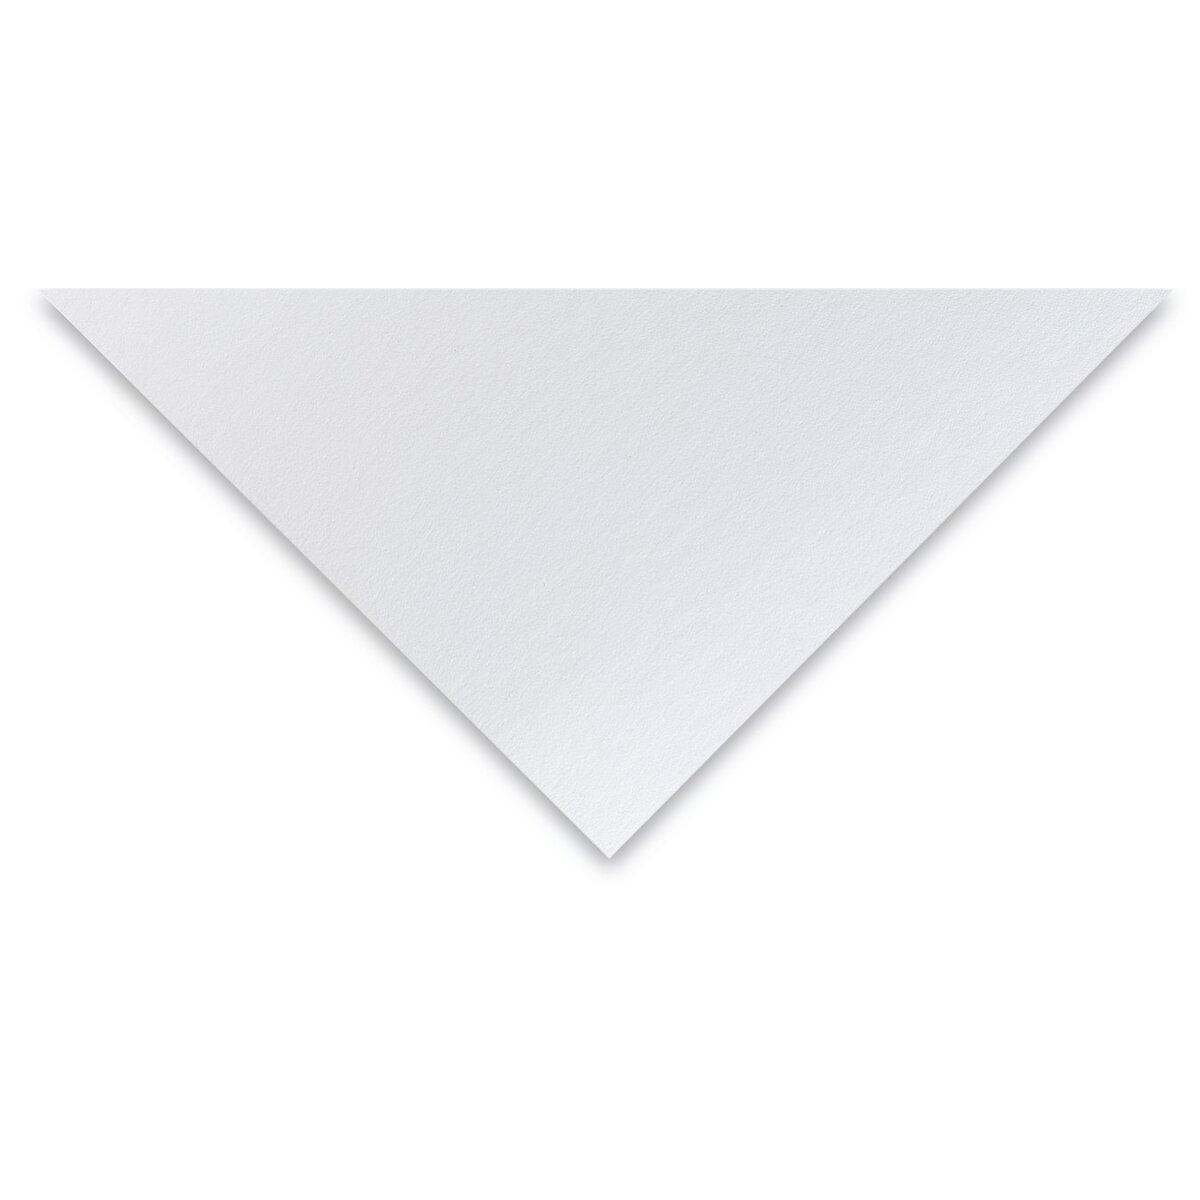 Crescent Picture Mounting Board - 32 x 40 x 28 ply, White